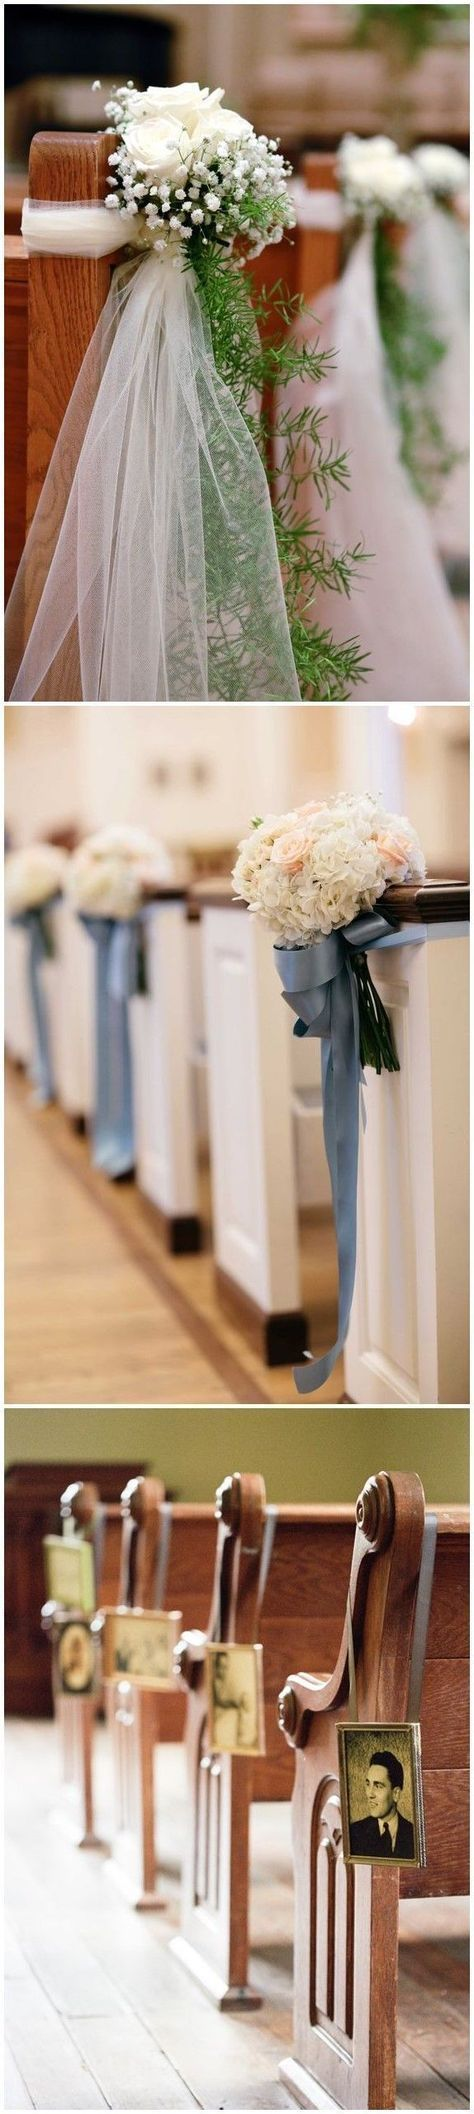 Wedding Decorations » 21 Stunning Church Wedding Aisle Decoration Ideas to Steal » ❤️ See more: http://www.weddinginclude.com/2017/05/stunning-church-wedding-aisle-decoration-ideas-to-steal/ #weddingcandlesdiy #churchwedding #churchweddingdecorations #churchweddingideas